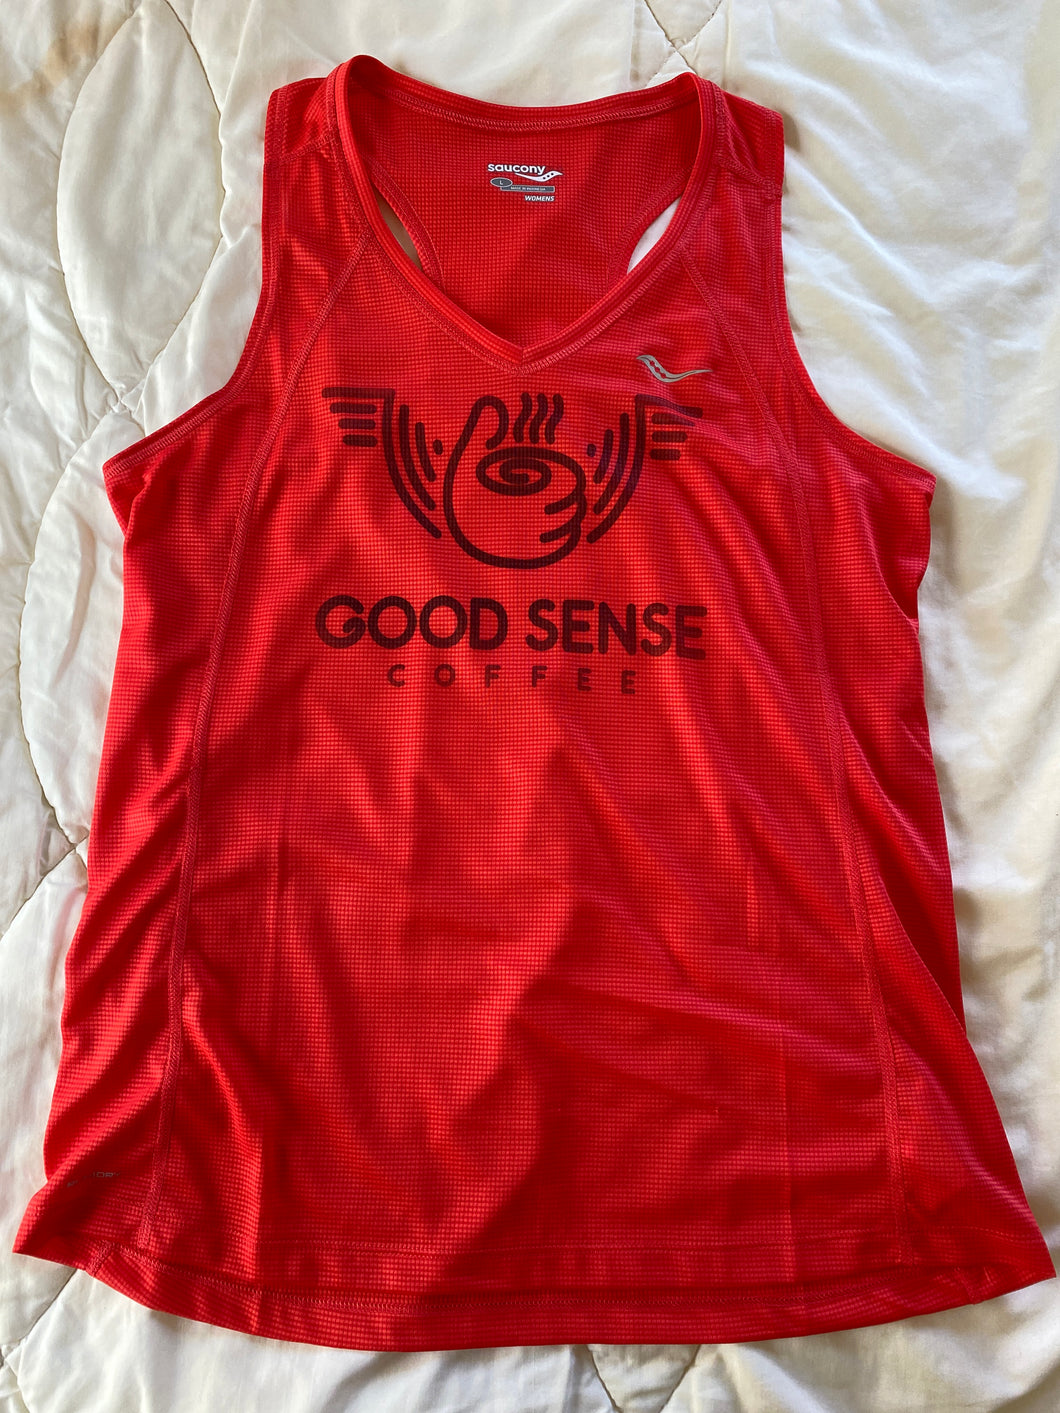 Misprint Good Sense singlets (Woman L)